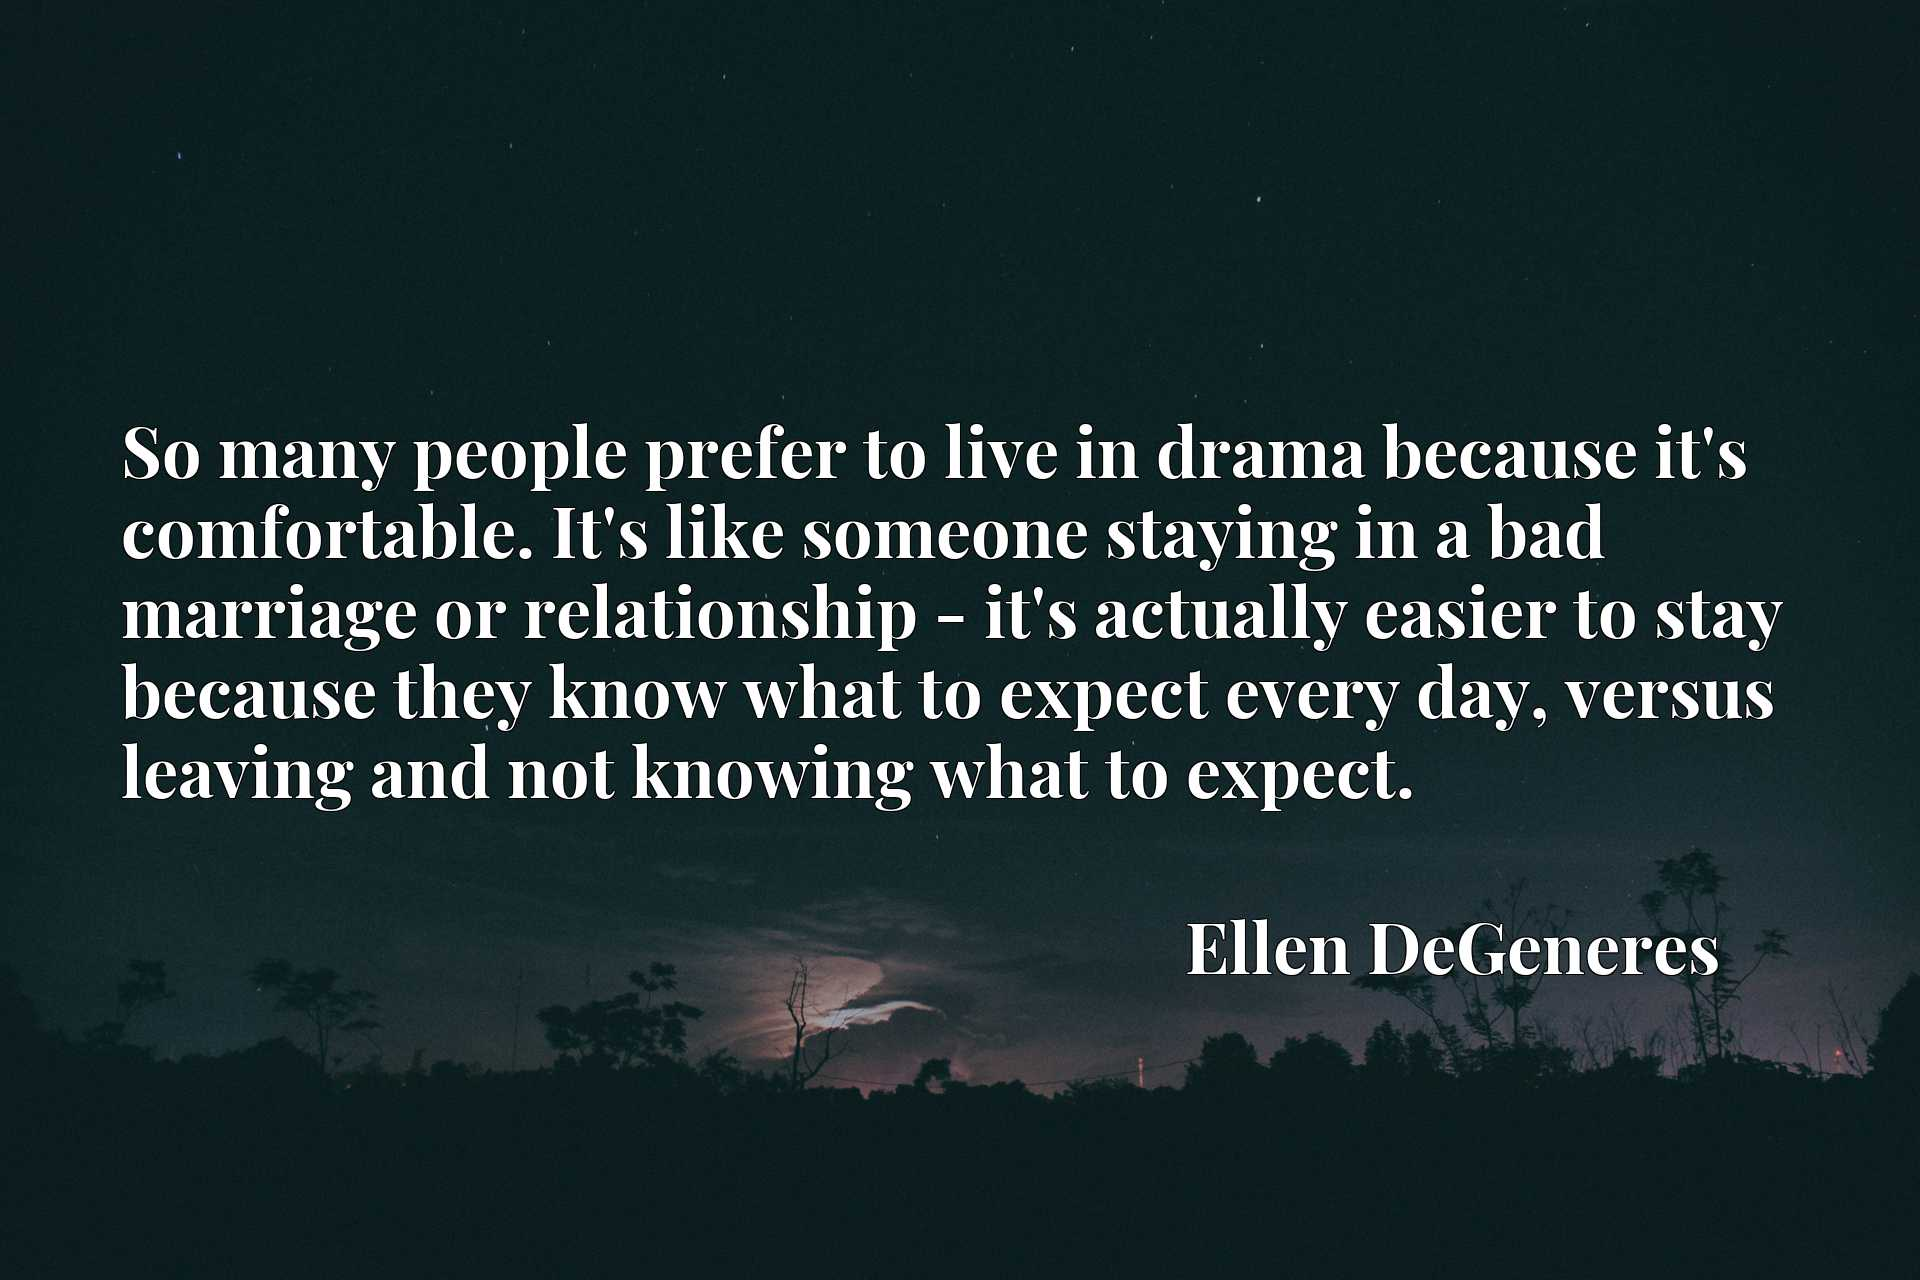 Quote Picture :So many people prefer to live in drama because it's comfortable. It's like someone staying in a bad marriage or relationship - it's actually easier to stay because they know what to expect every day, versus leaving and not knowing what to expect.